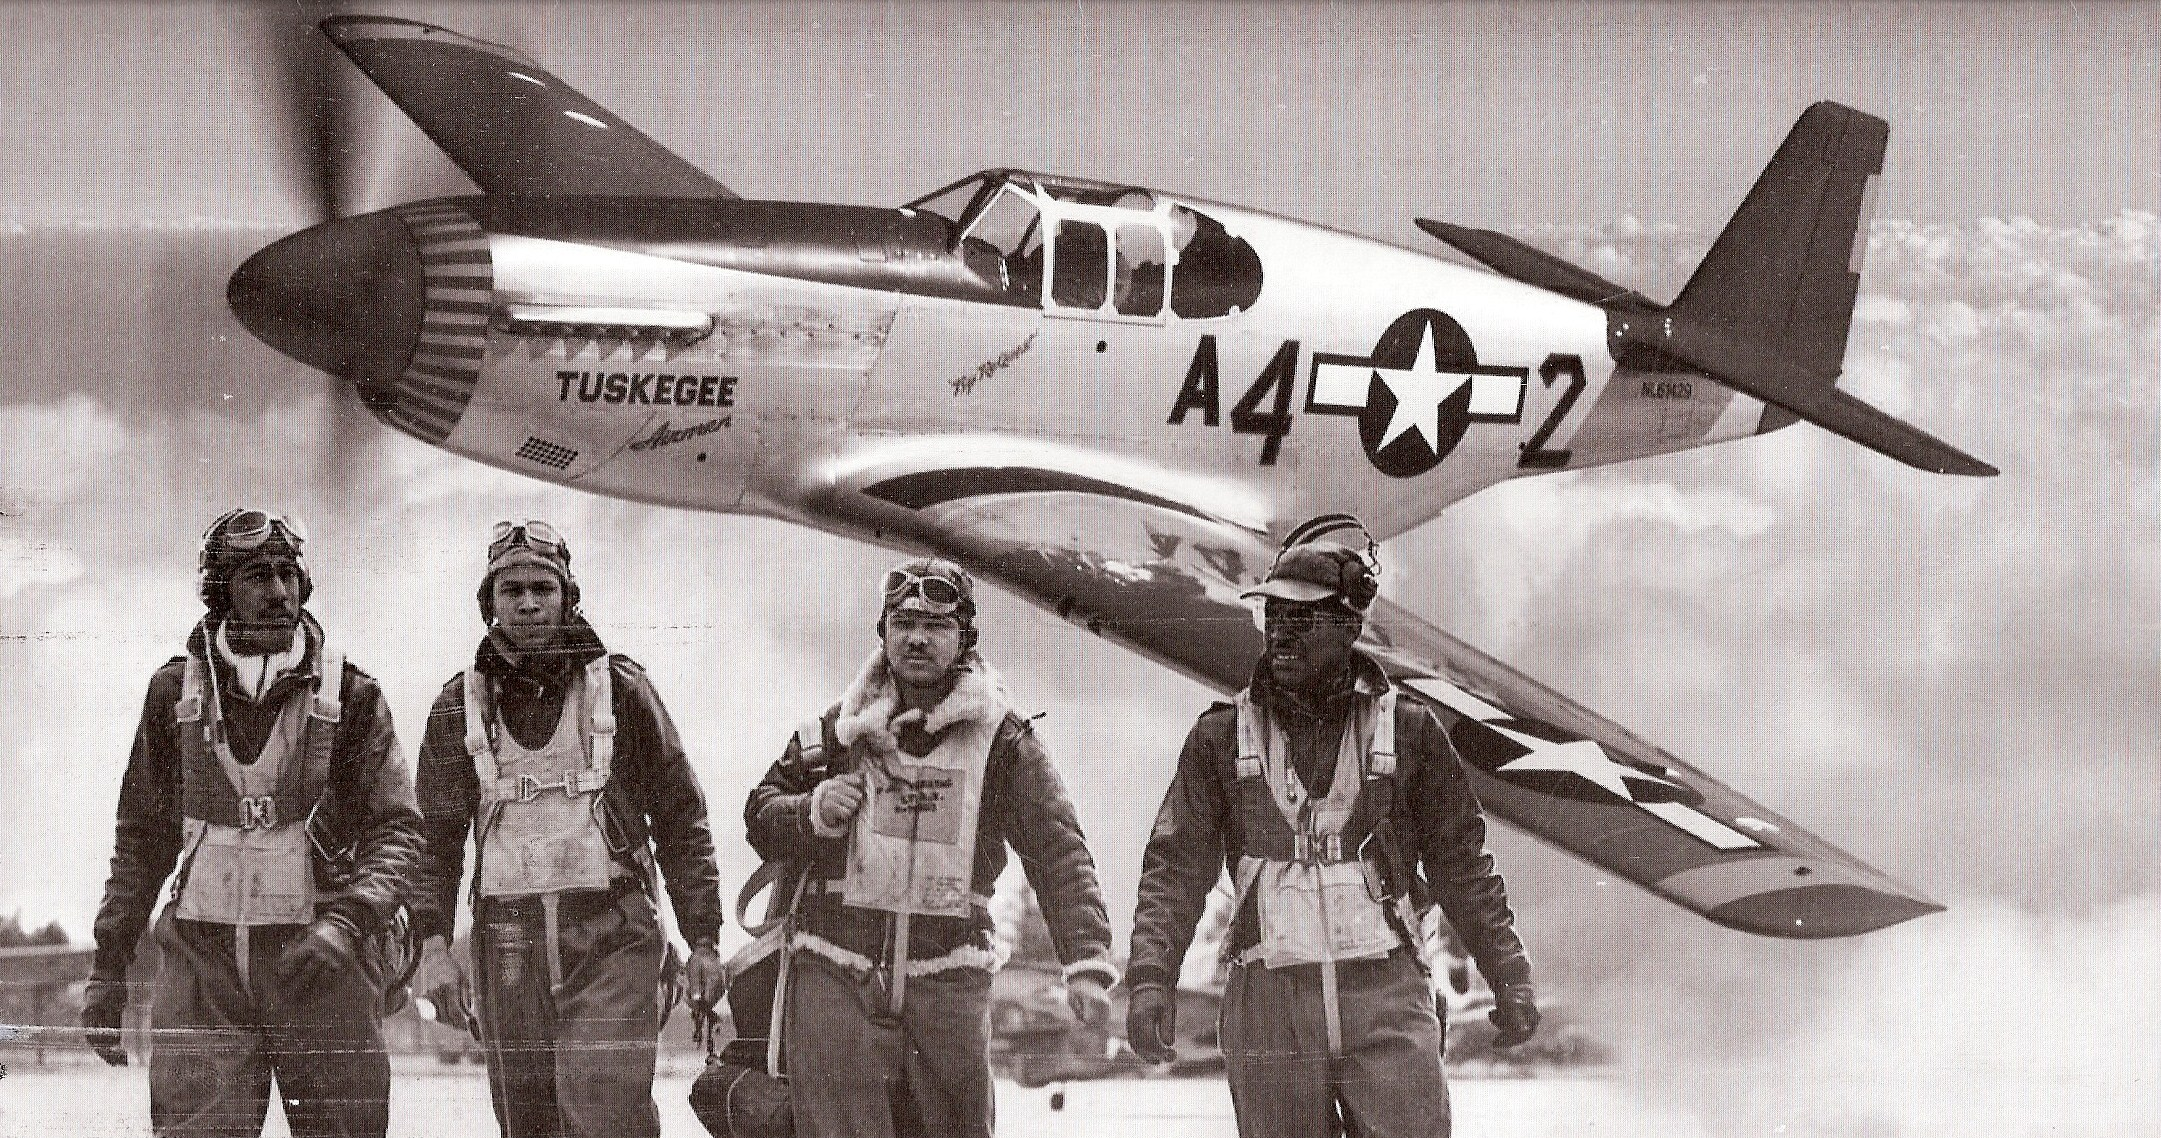 an introduction and an analysis of tuskegee airman